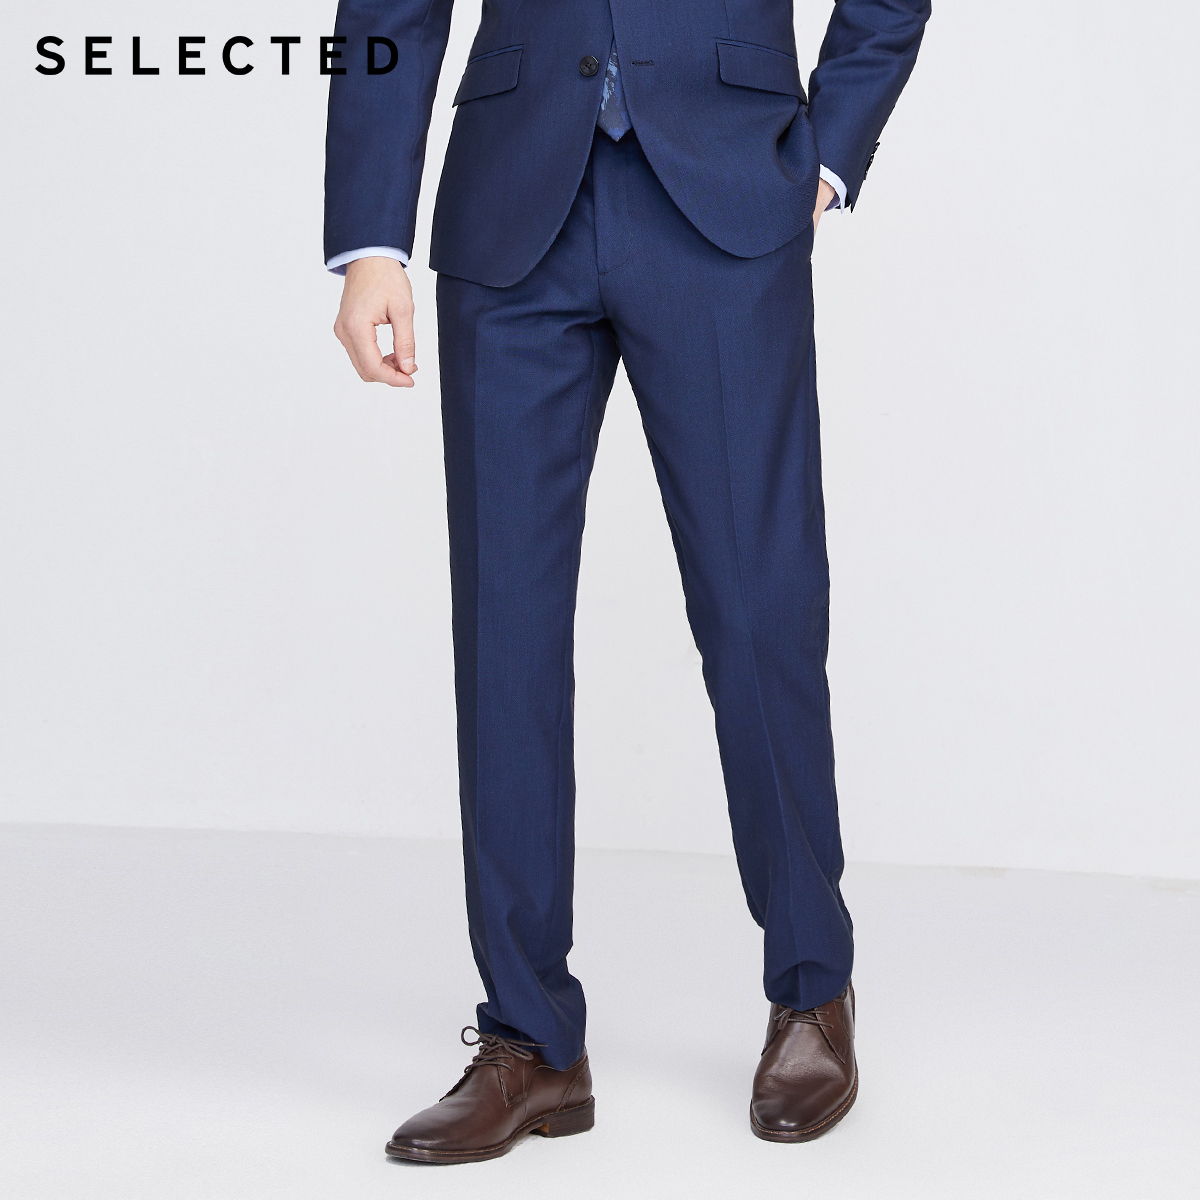 SELECTED Men's Regular Fit Pure Color Suit Pants S|42016A505